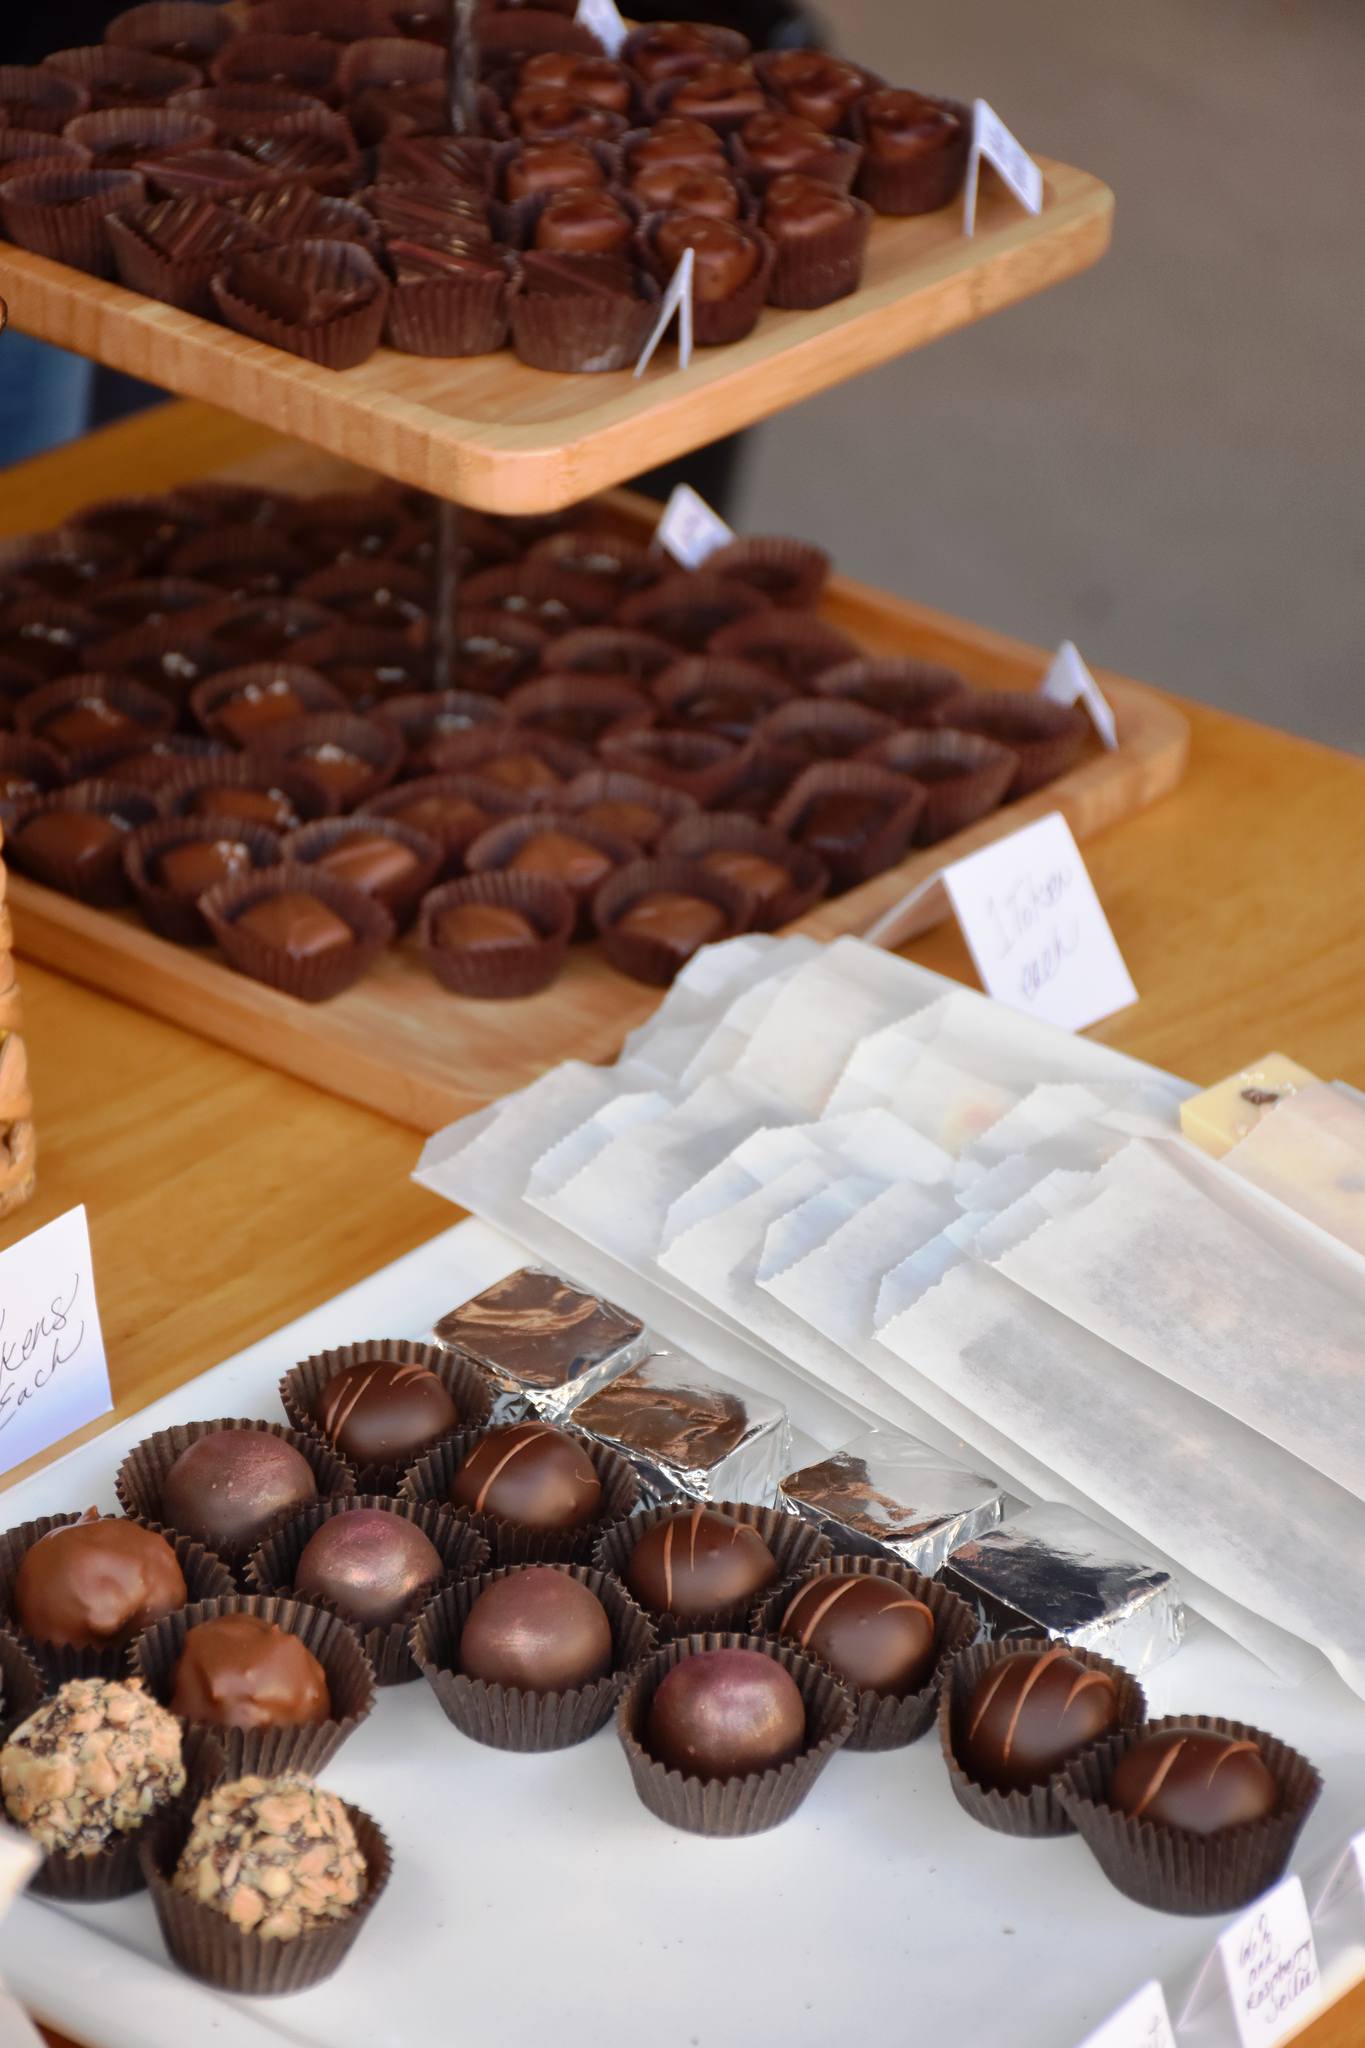 Hand Crafted Chocolates at Peterson's Gallery and Chocolatier